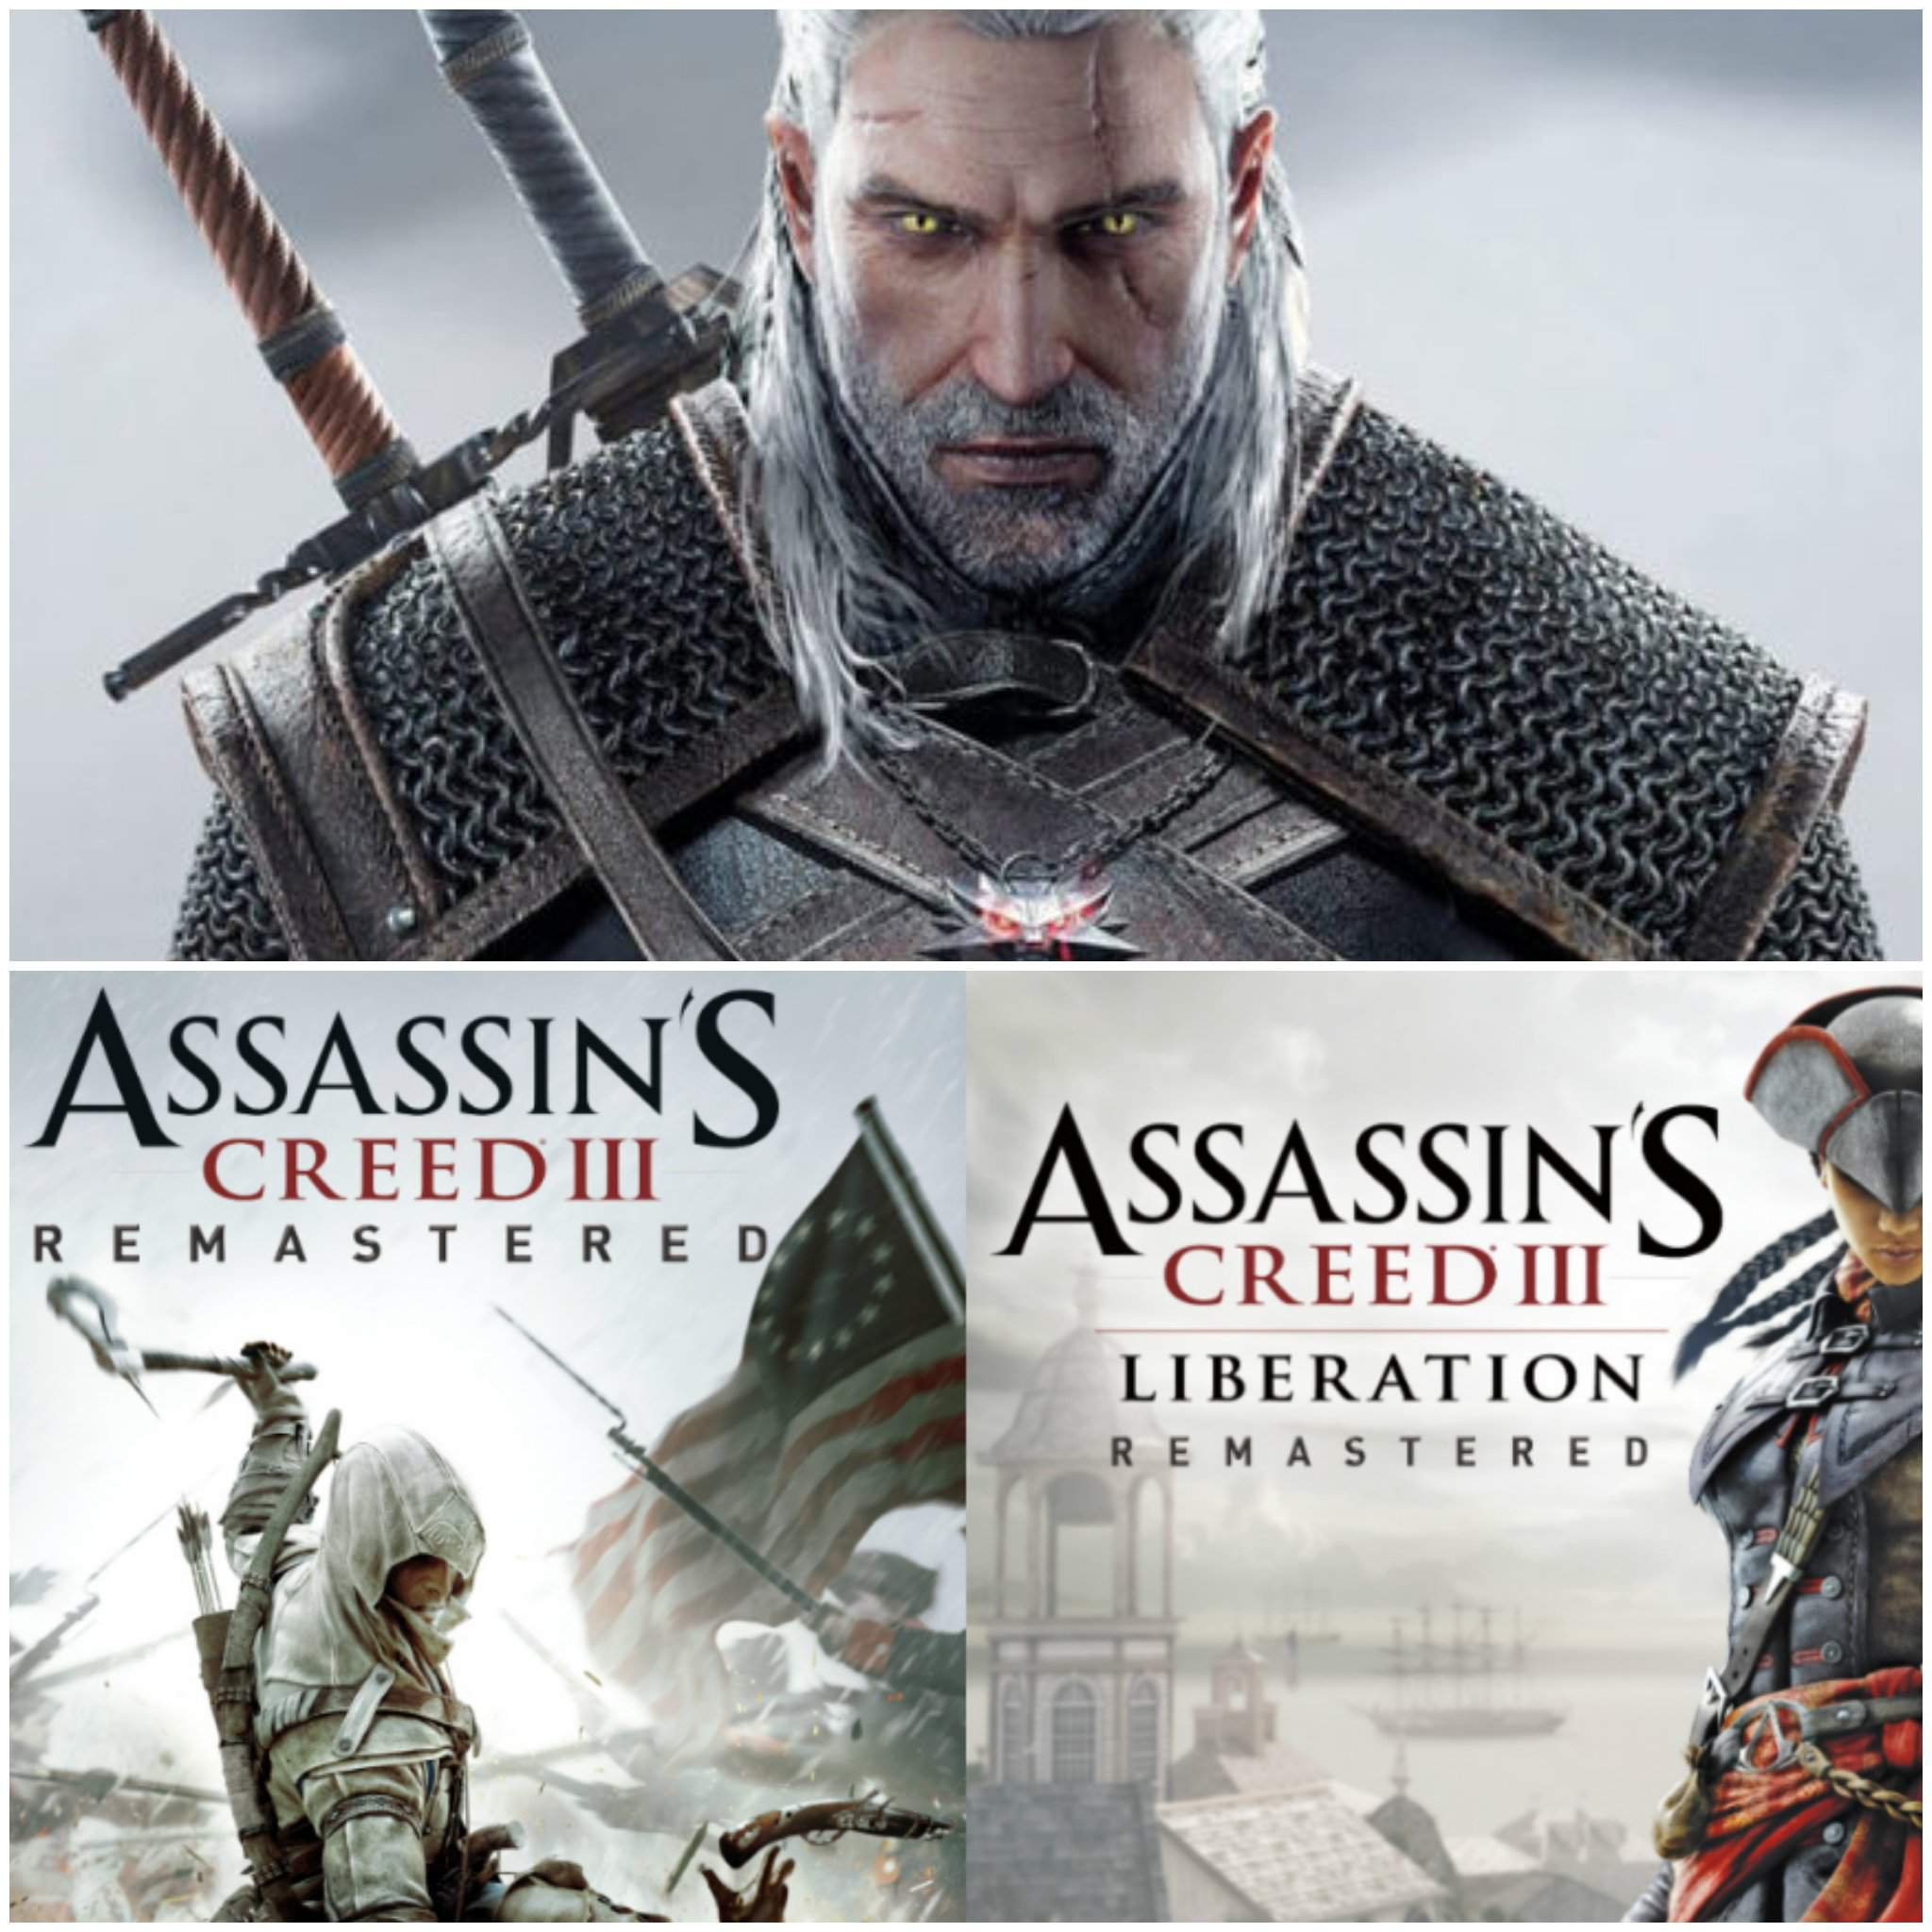 The Witcher 3 And Assassin S Creed 3 Liberation Remastered